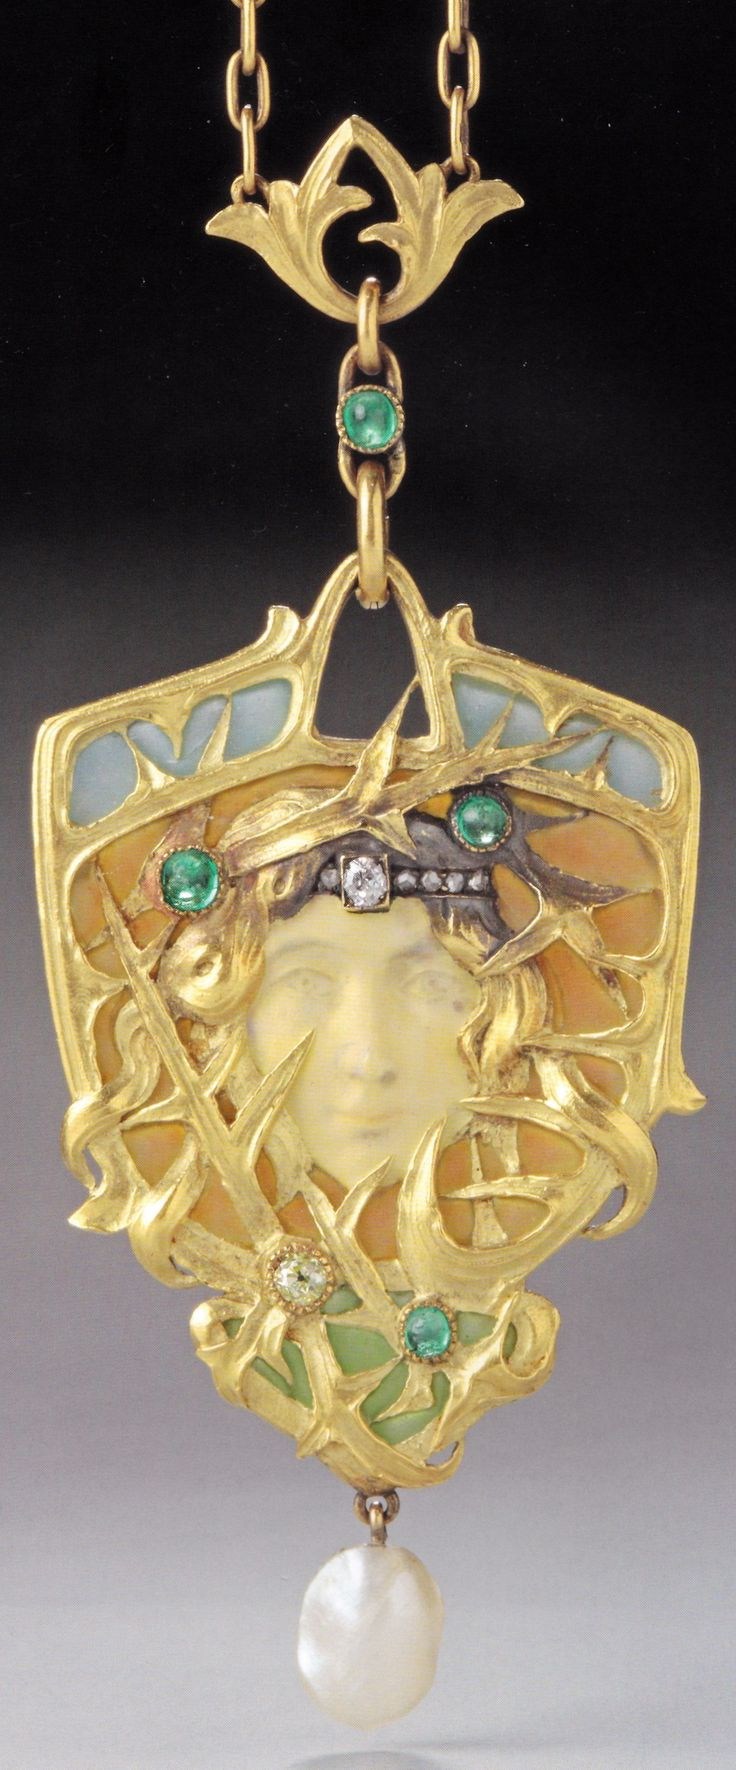 An Art Nouveau gold, enamel, diamond, emerald and baroque pearl pendant, Paris, circa 1900. Previously attributed to Mucha / Fouquet. Source: Wolfgang Glüber, Jugendstilschmuck #ArtNouveau #pendant